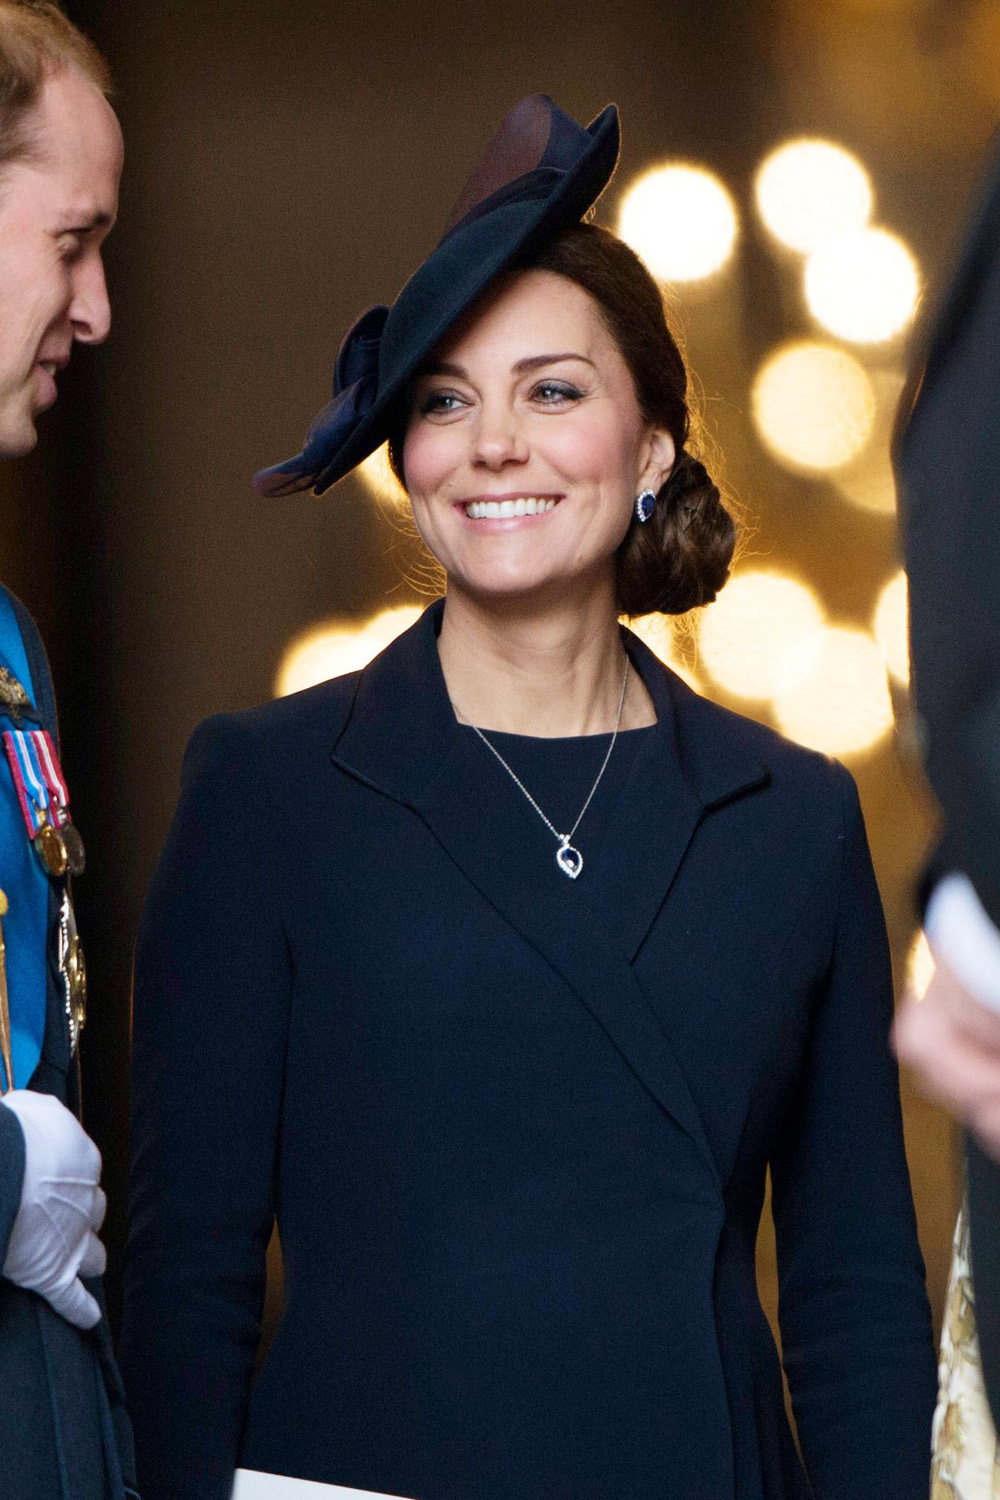 Kate Middleton Jewellery File From Her Sapphire